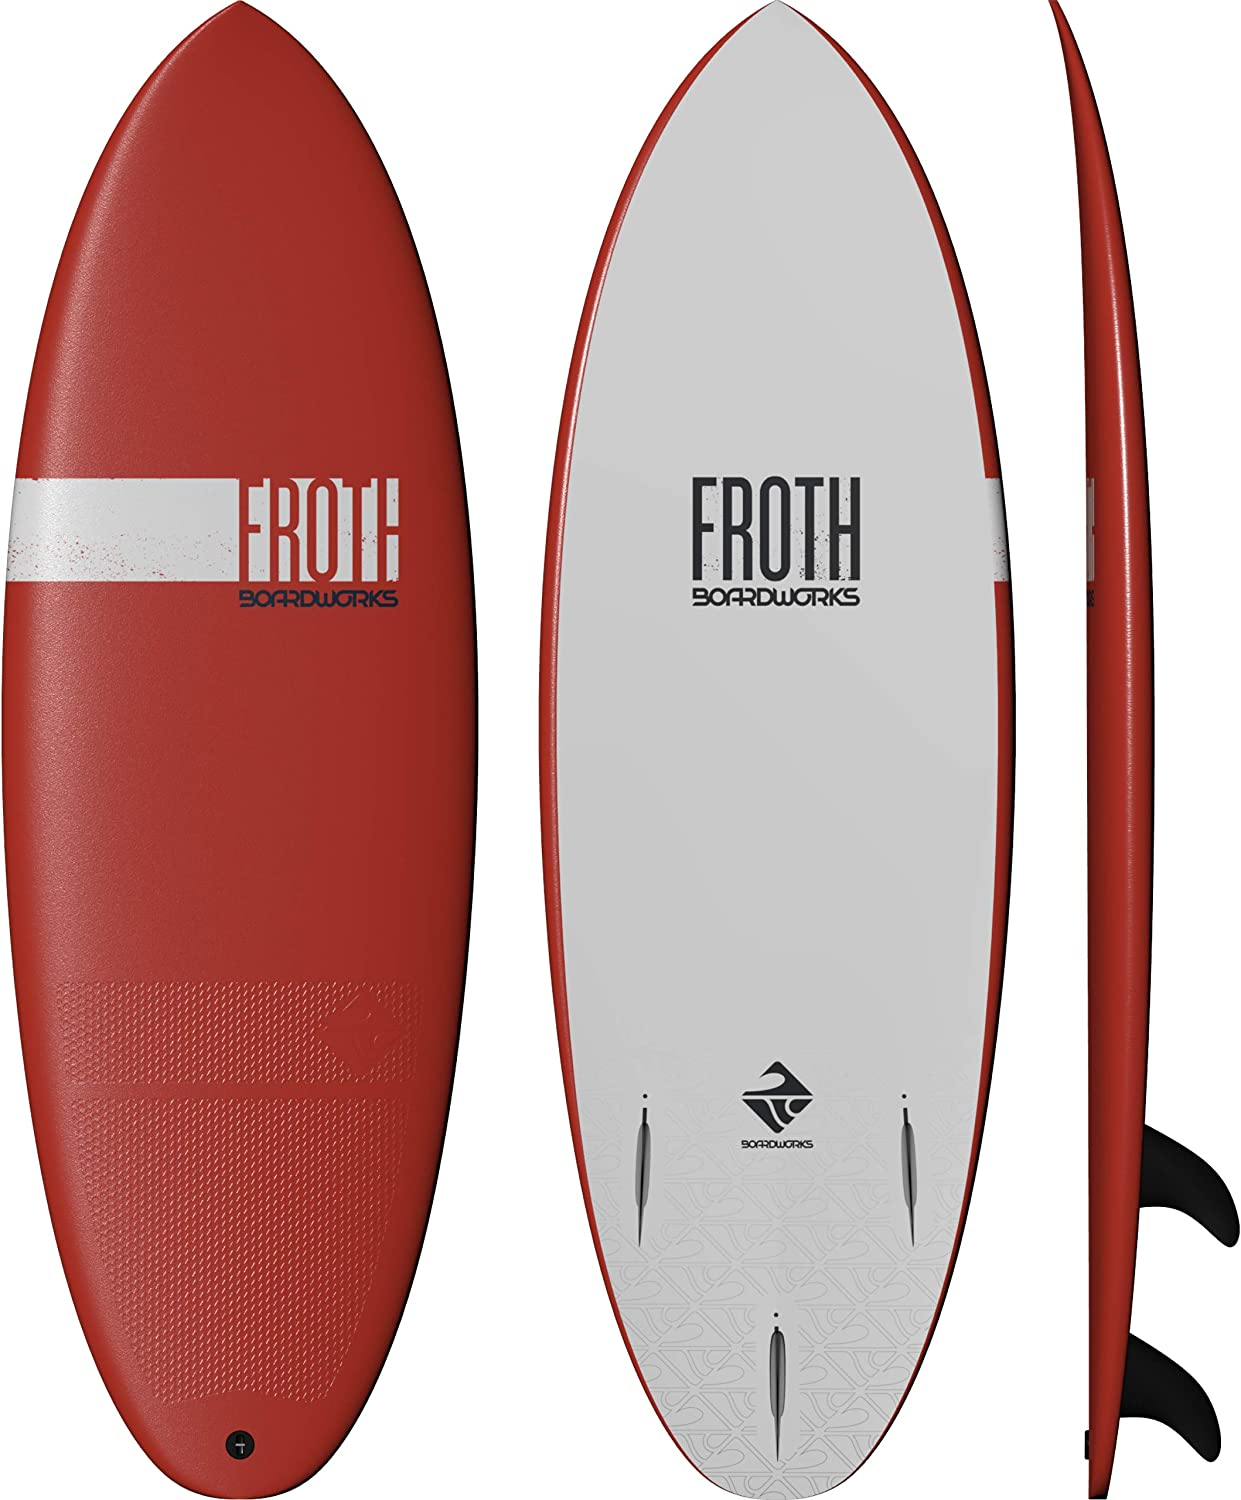 CWB Connelly Ride Wake surfer for large riders